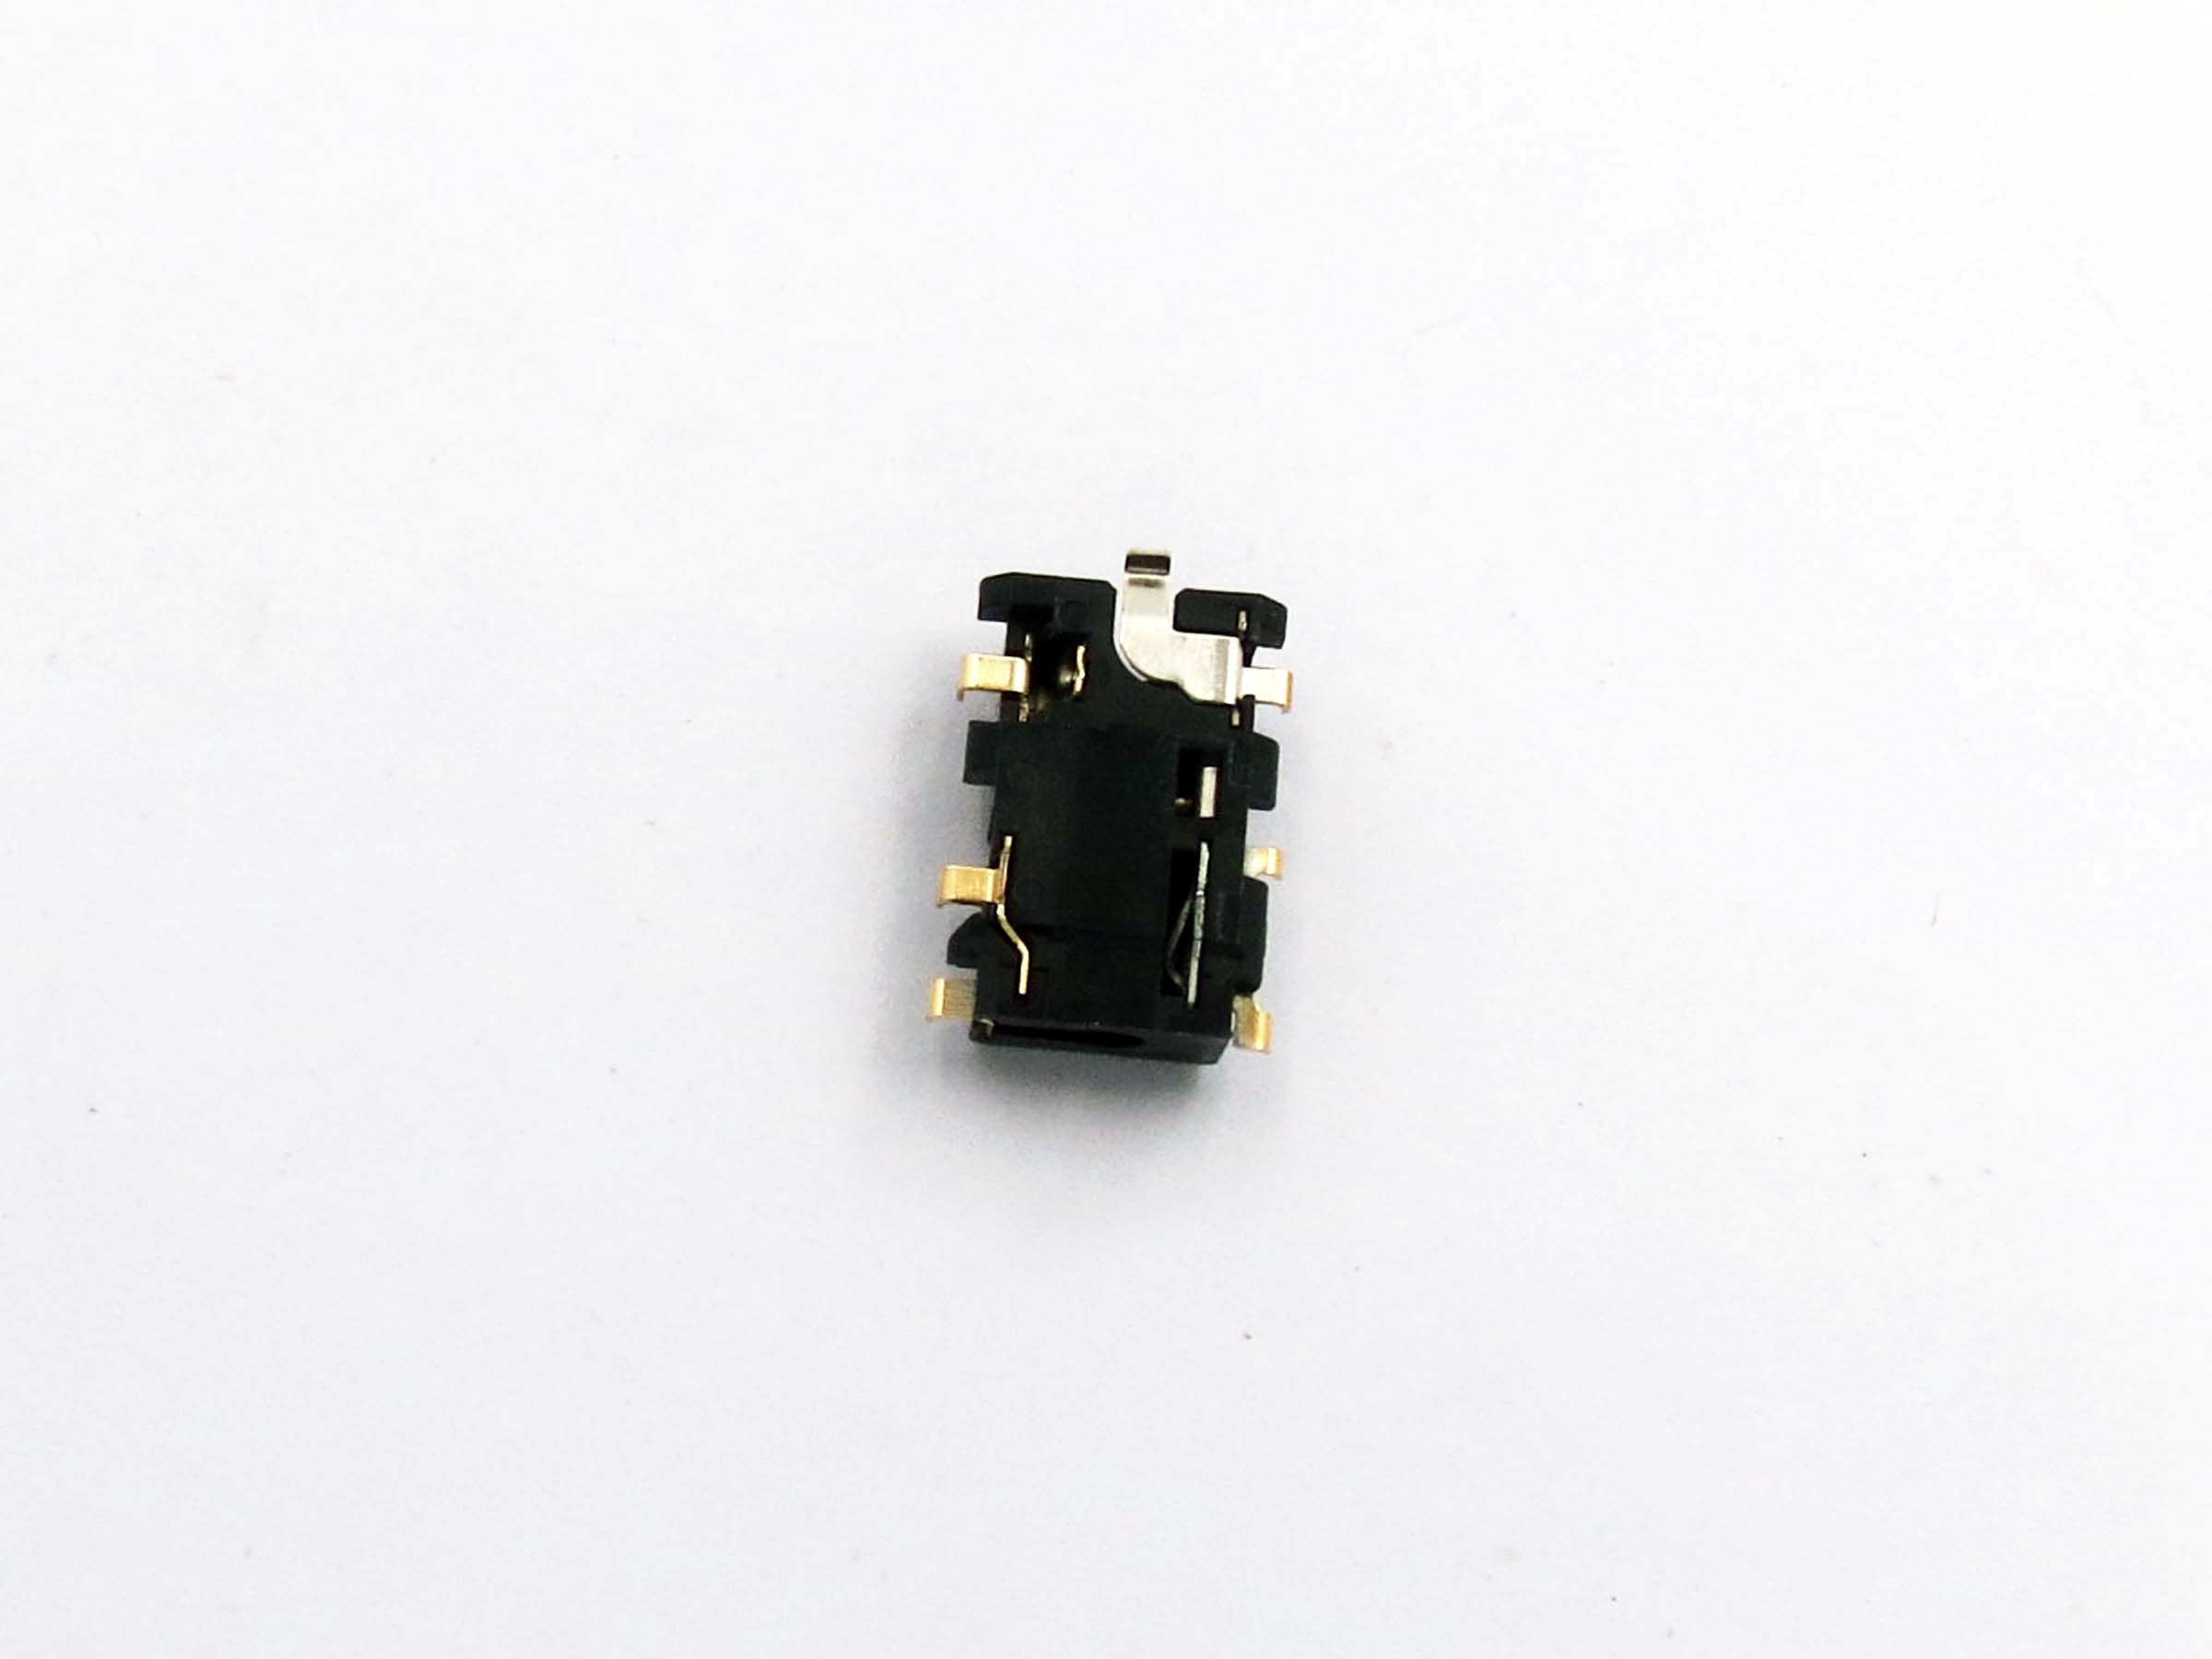 Harga Lcd Touchscreen Complete Xiaomi Redmi Note 3 Pro Kenzo Bettina Heels Bedegraine Black Hitam 40 Original Earphone Headphone Jack Flex Cable For